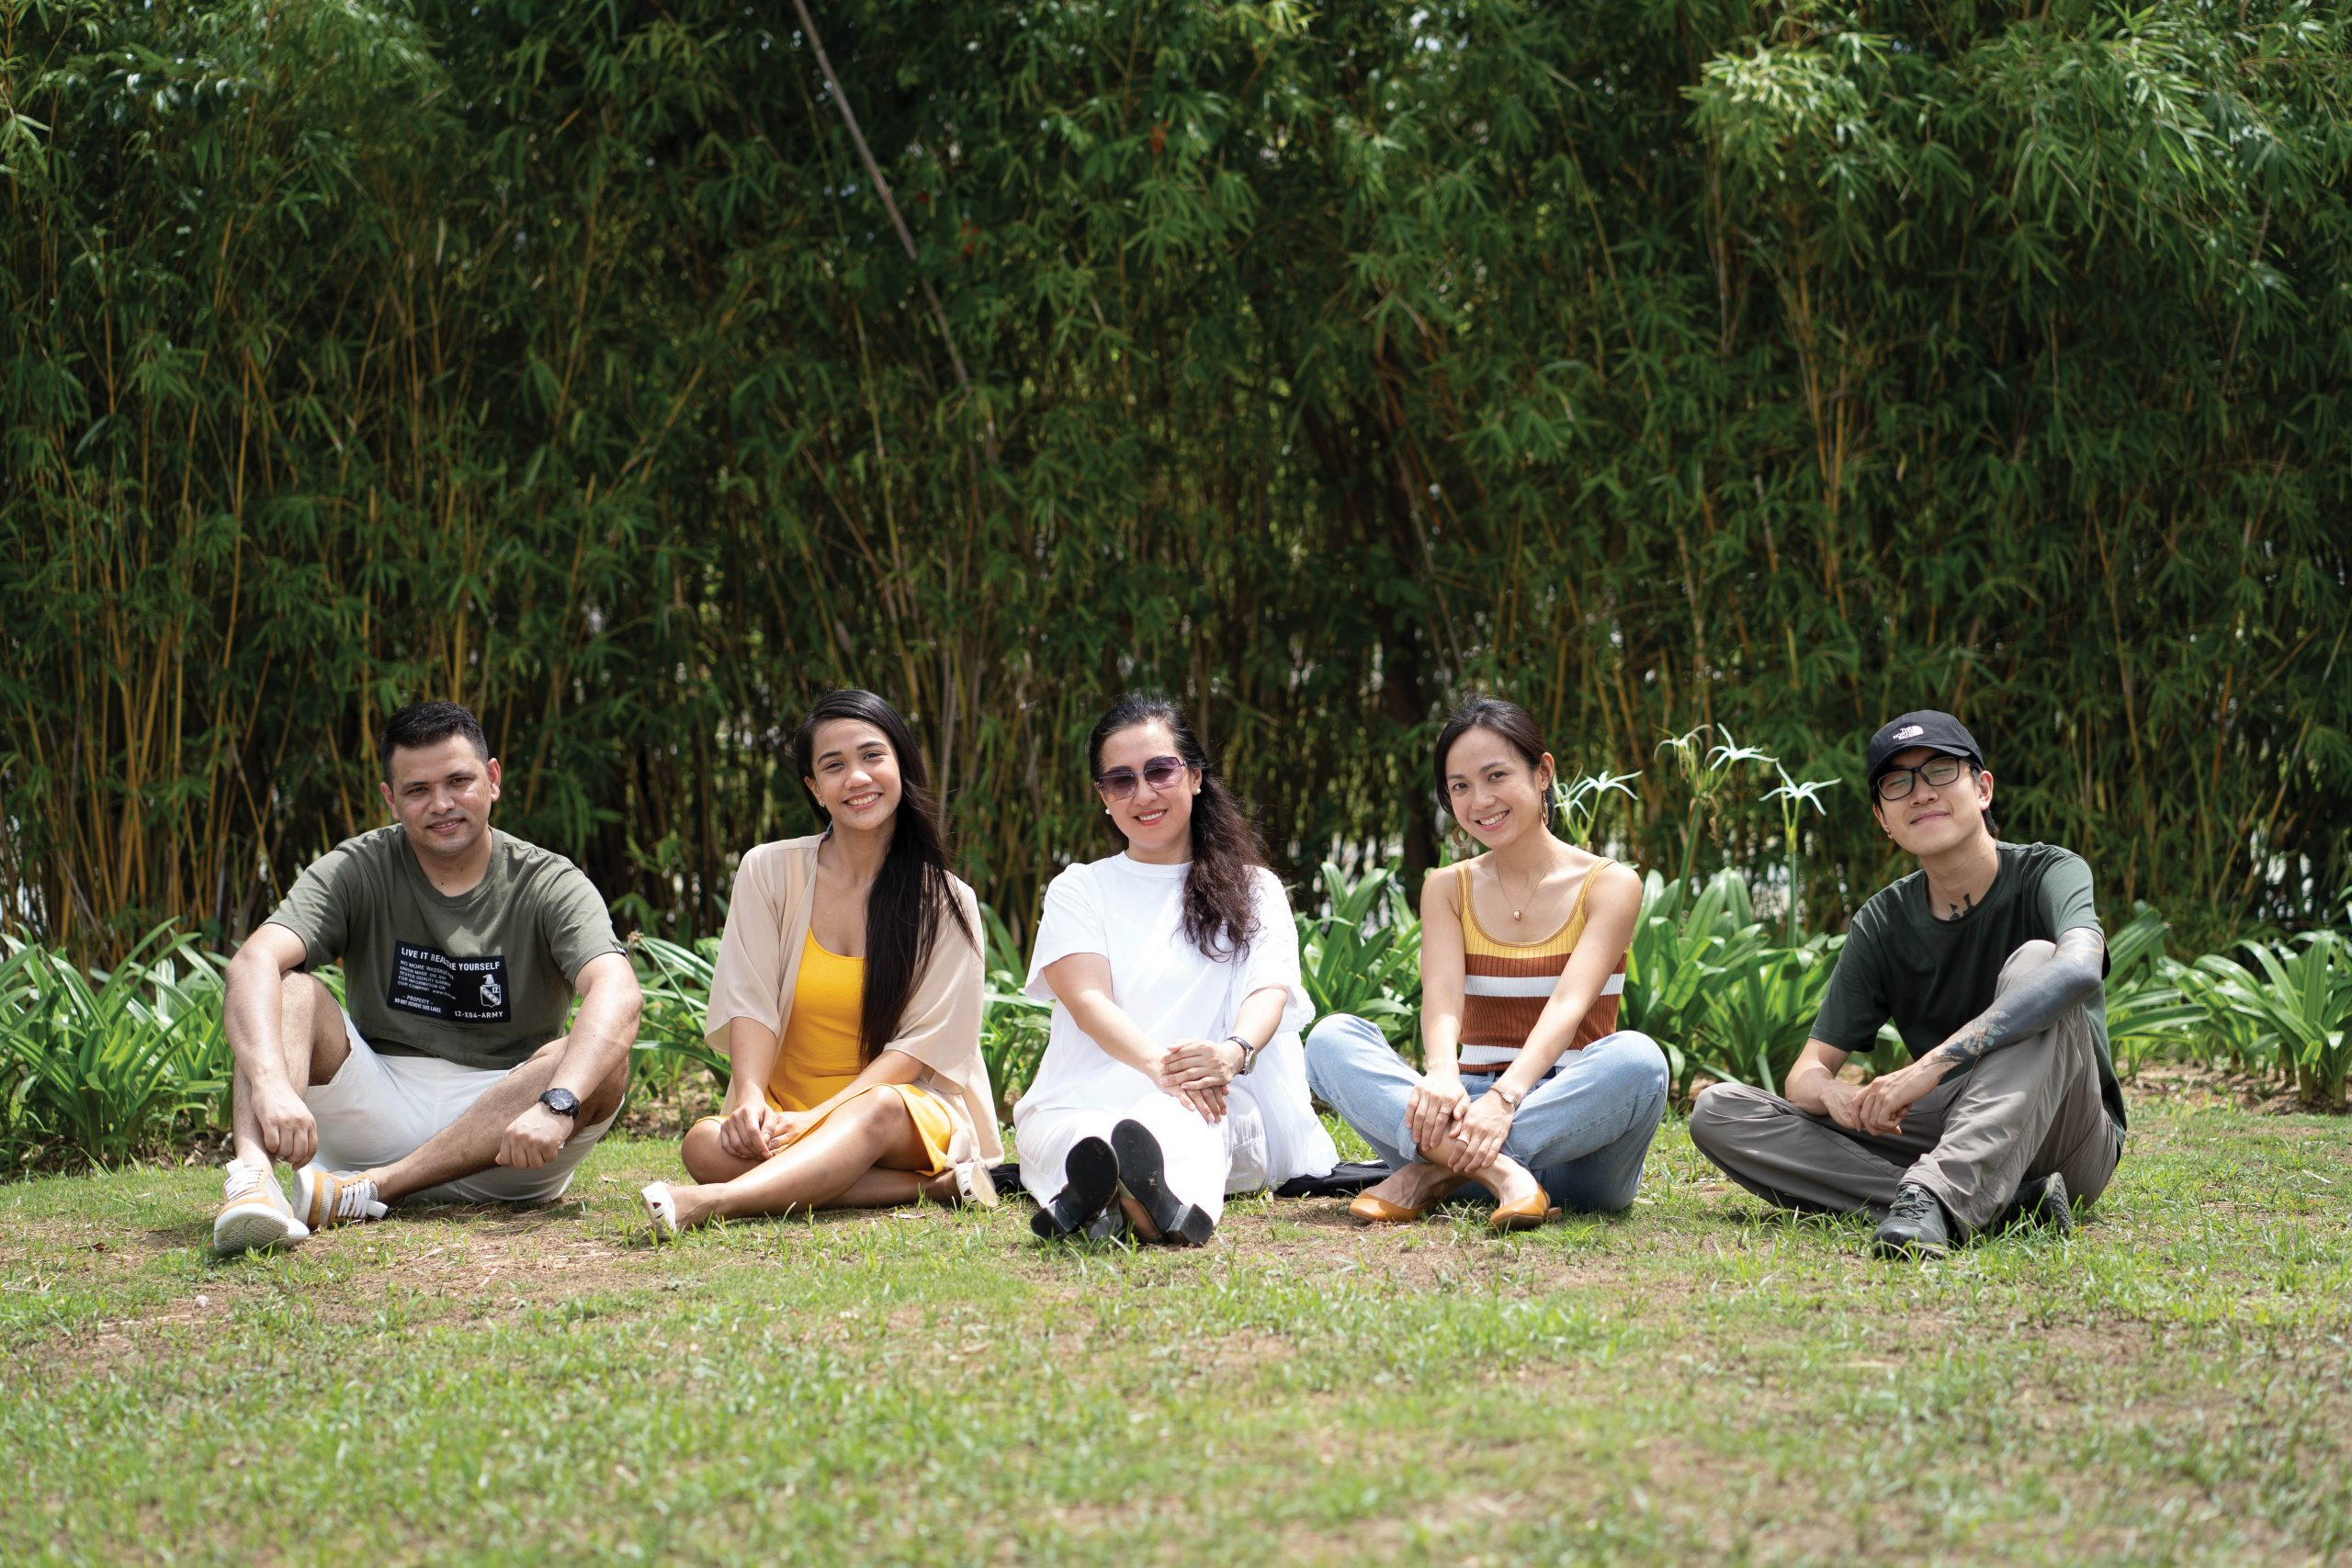 From left: Ram Bahadur Kutal Chhetri, Sheena Flor Tamayo, Ada Lo, Vivi Cheung and Delic Tang | Photo by Denzel Calangi